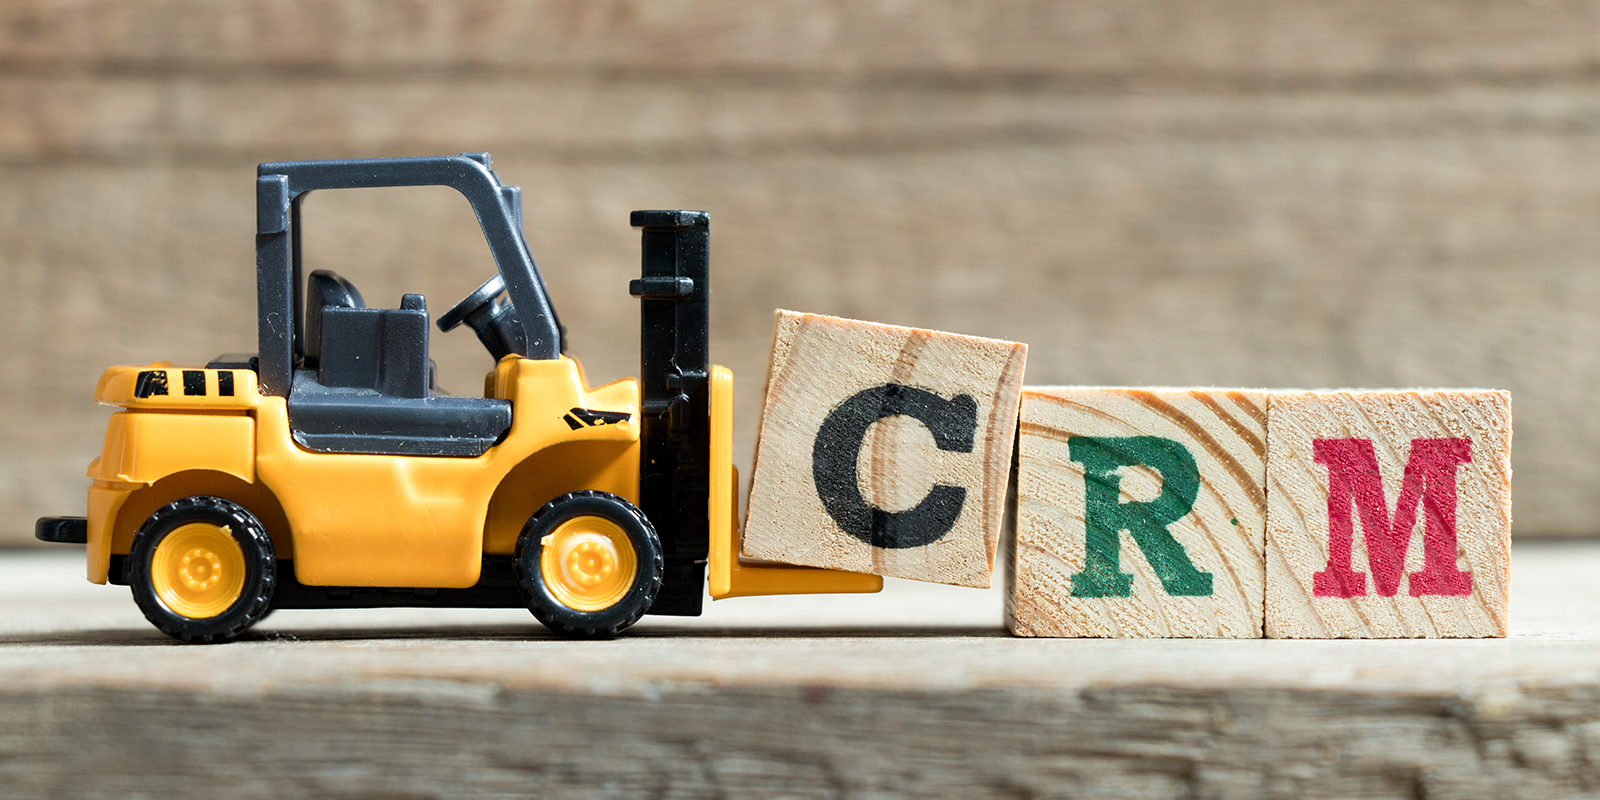 Crm in south africa